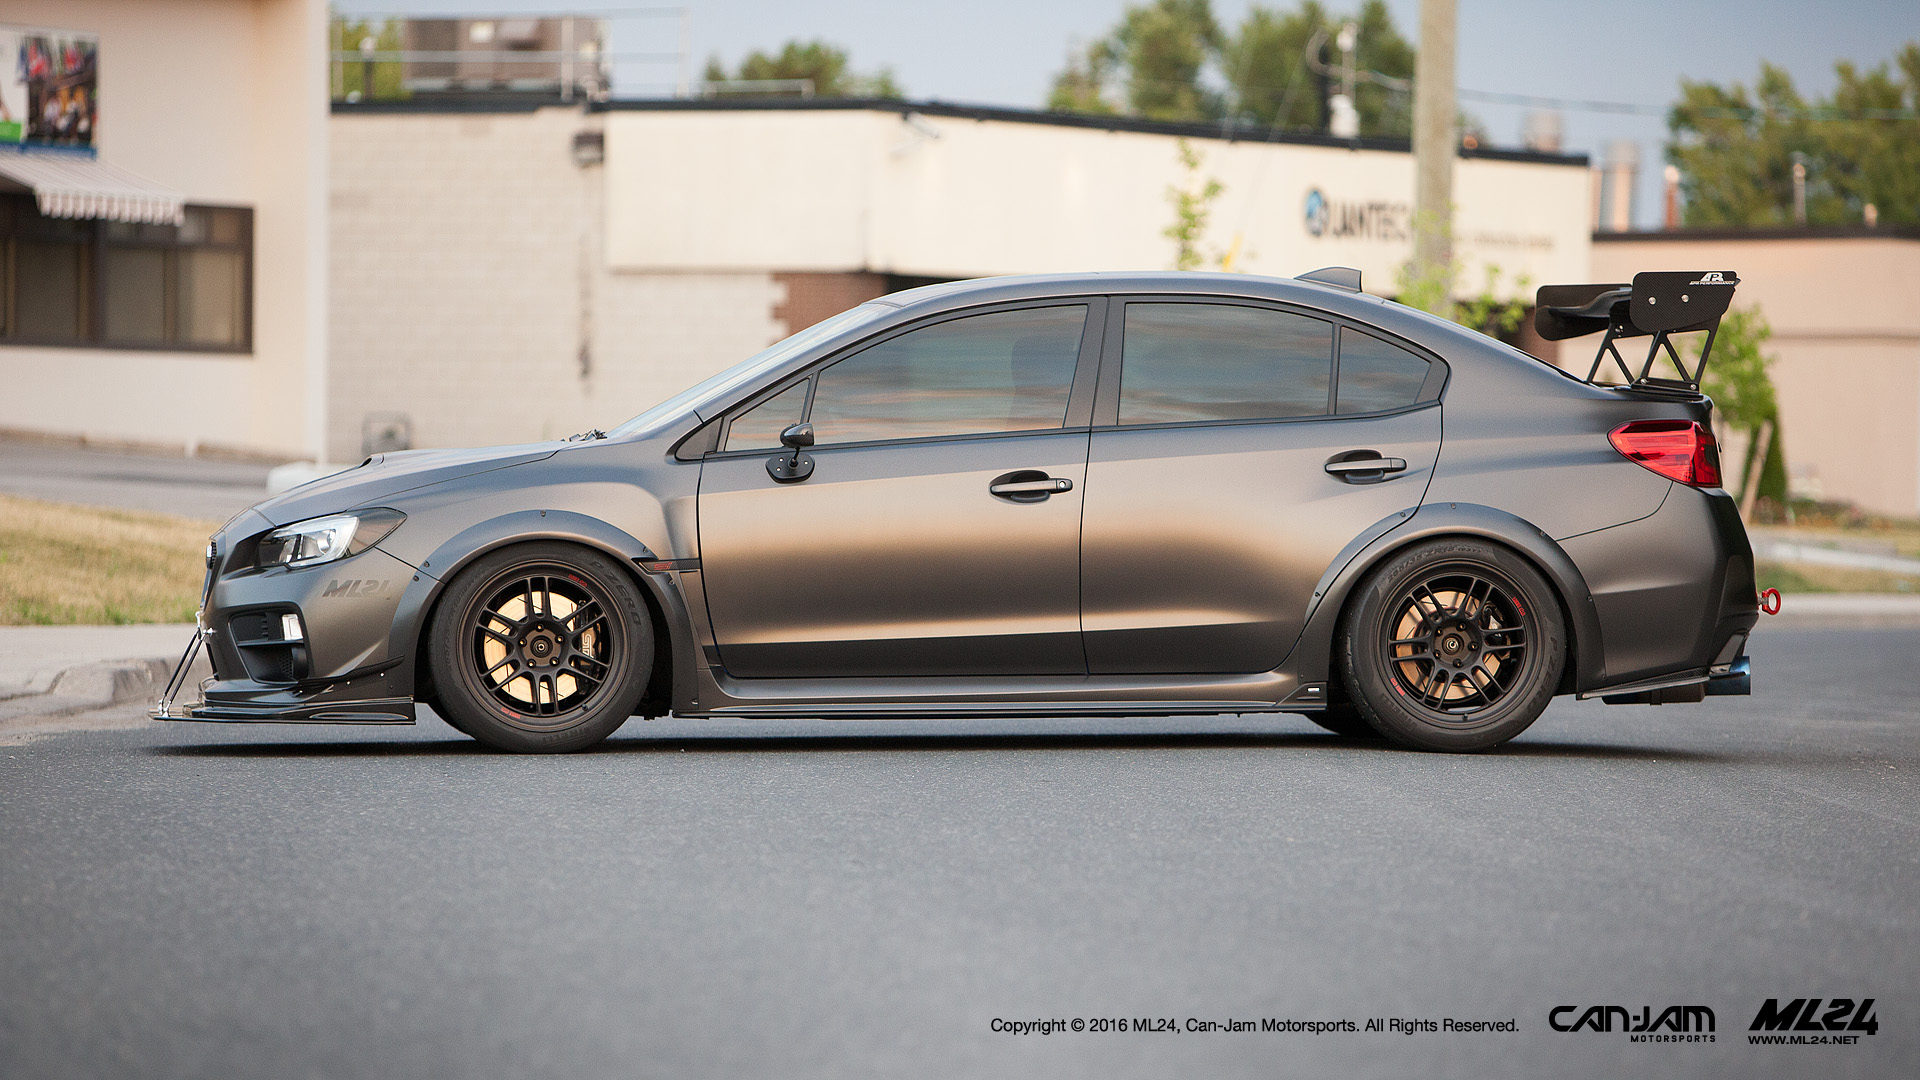 Ml24 Can Jam 2017 Subaru Wrx Sti Wide Body Fender Flares